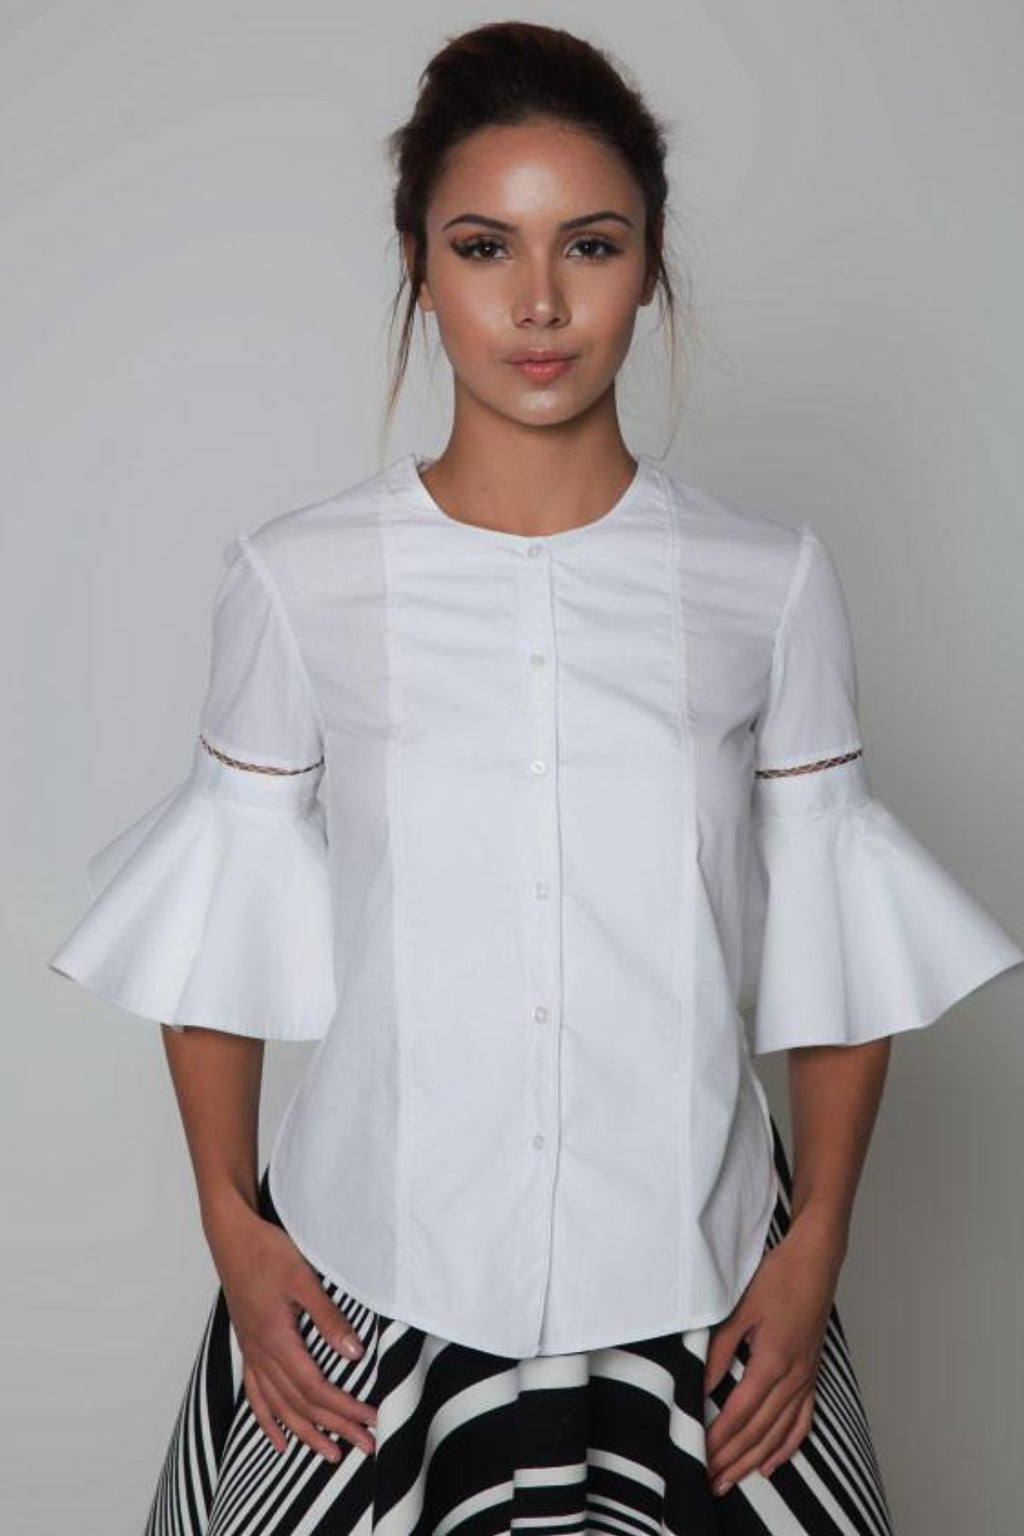 Kundiman Shirt Shirts + tops Ethical Sustainable Vegan Organic Australian fashion womens clothes